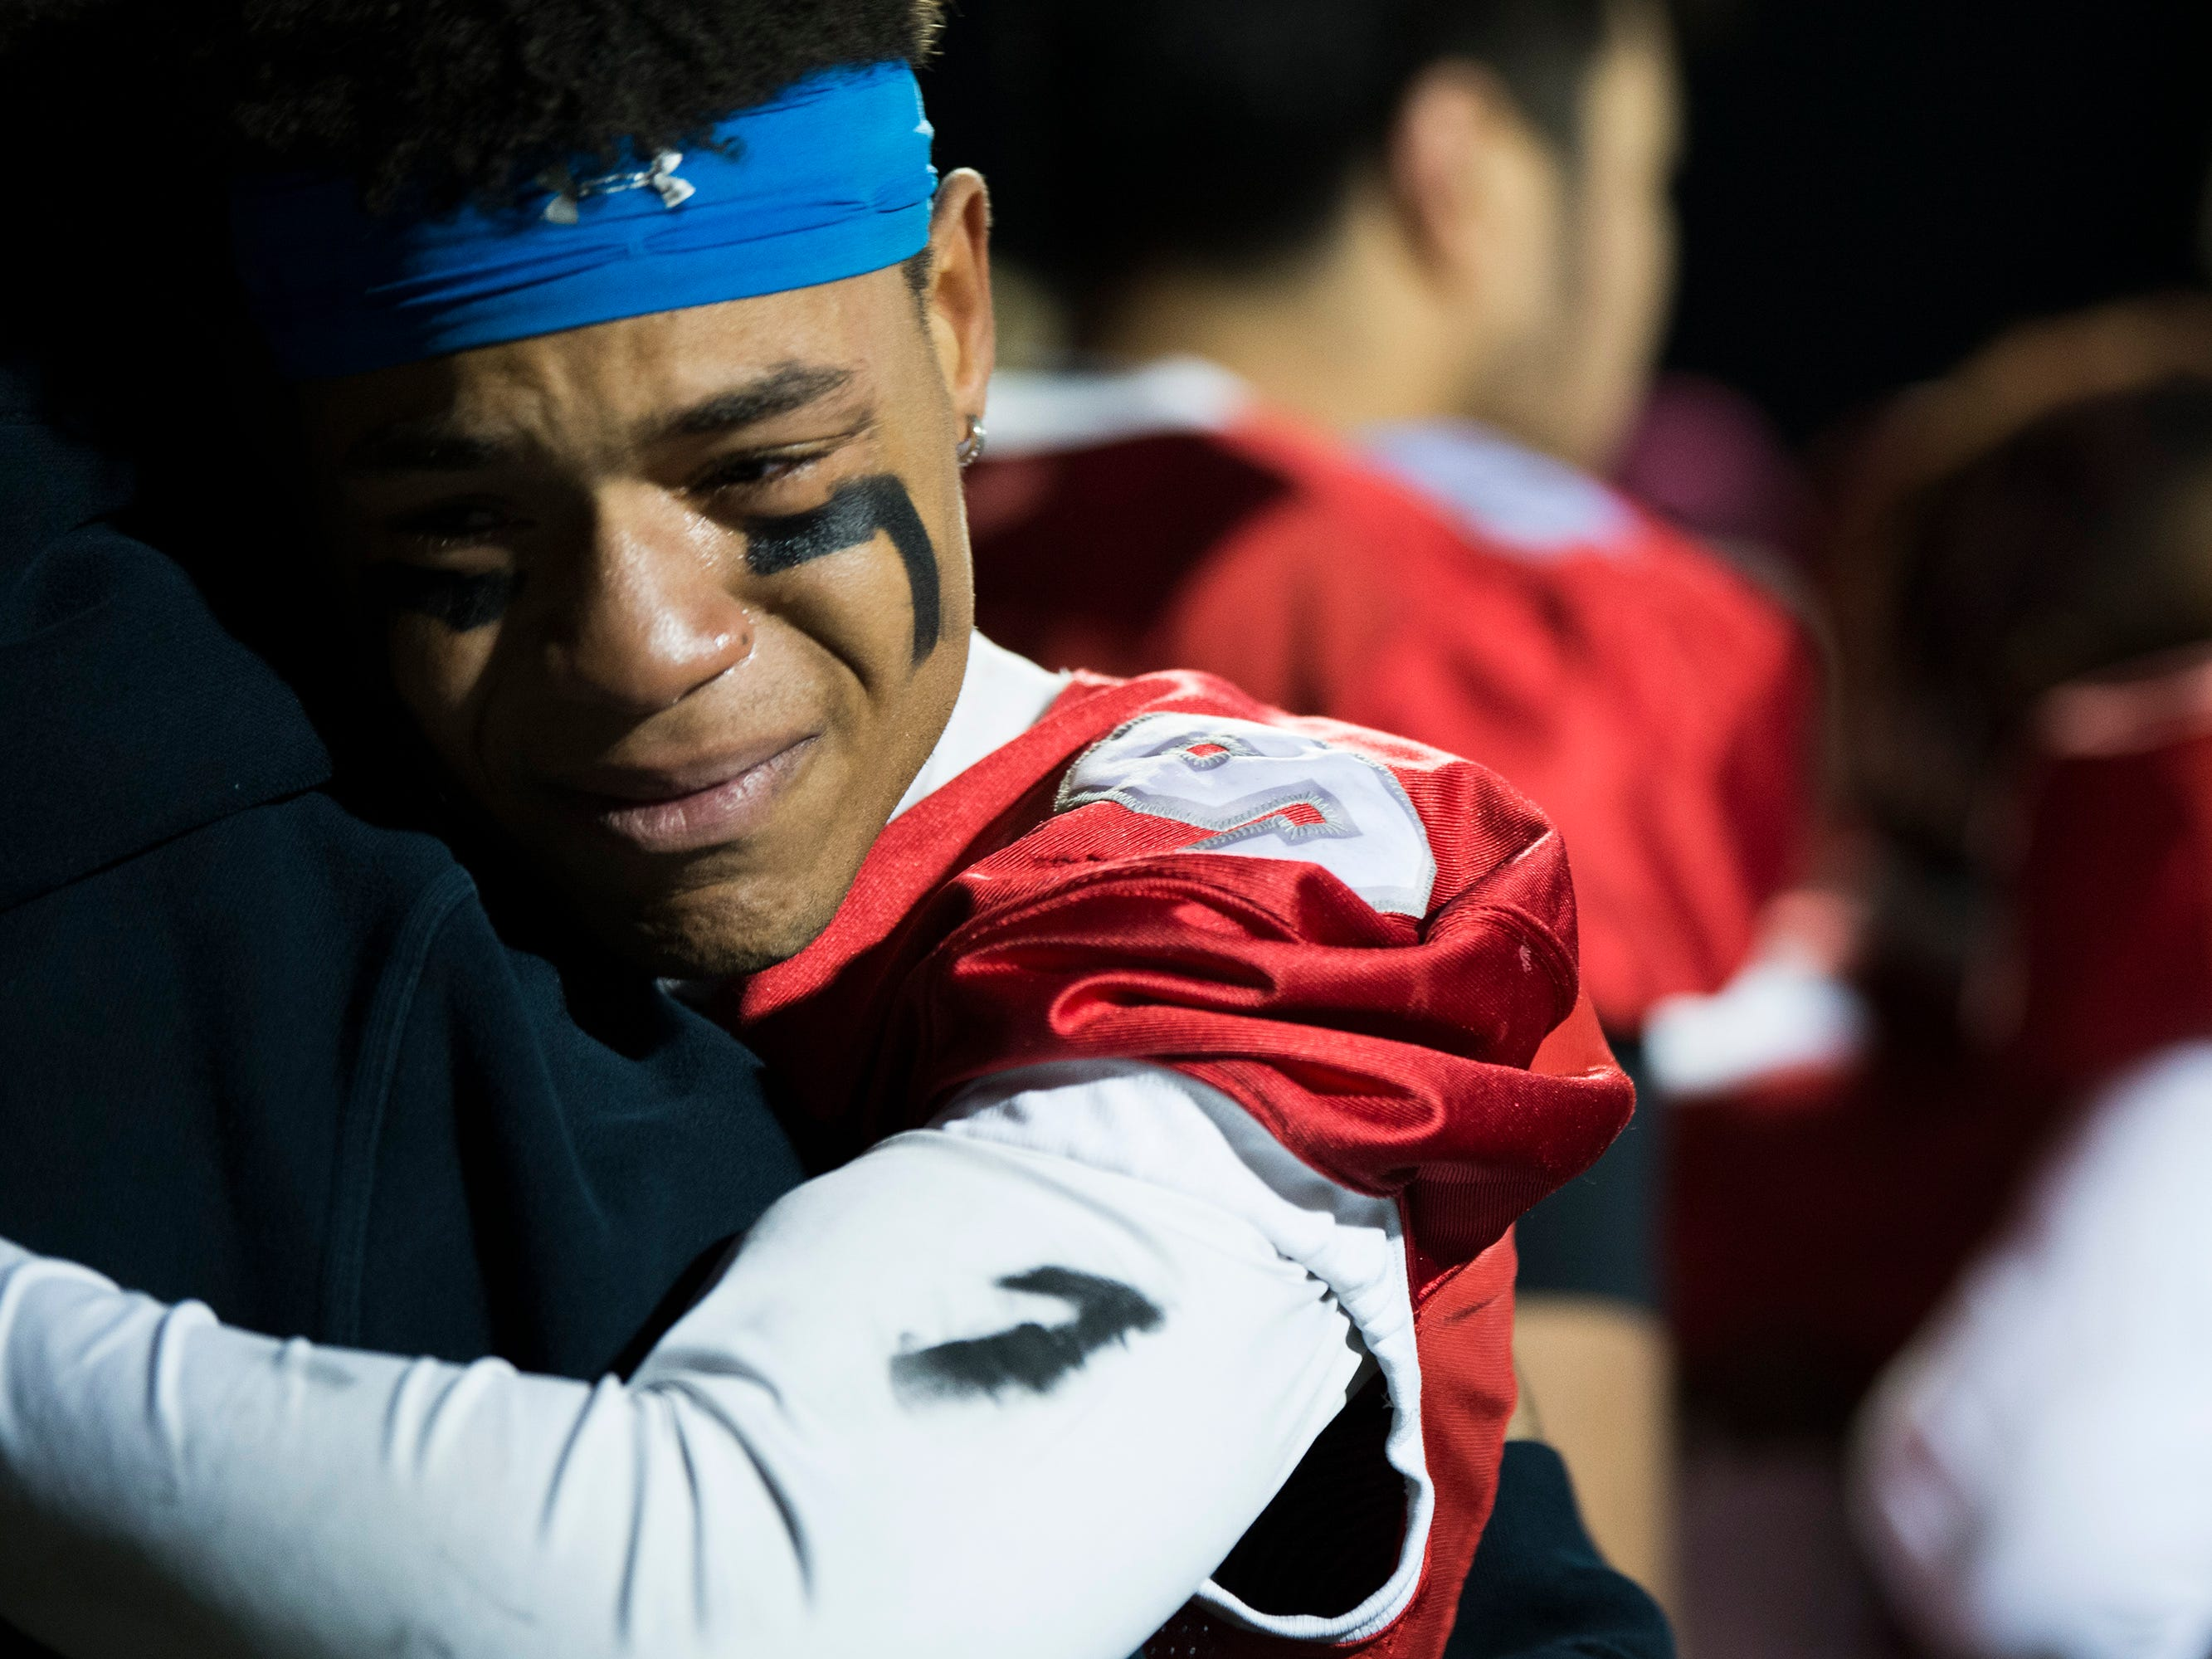 East's Elijah Adkins (9) is embraced following a loss in the annual East-West game Wednesday, Nov. 21, 2018 at Cherry Hill West High School in Cherry Hill, N.J. West won 22-7.